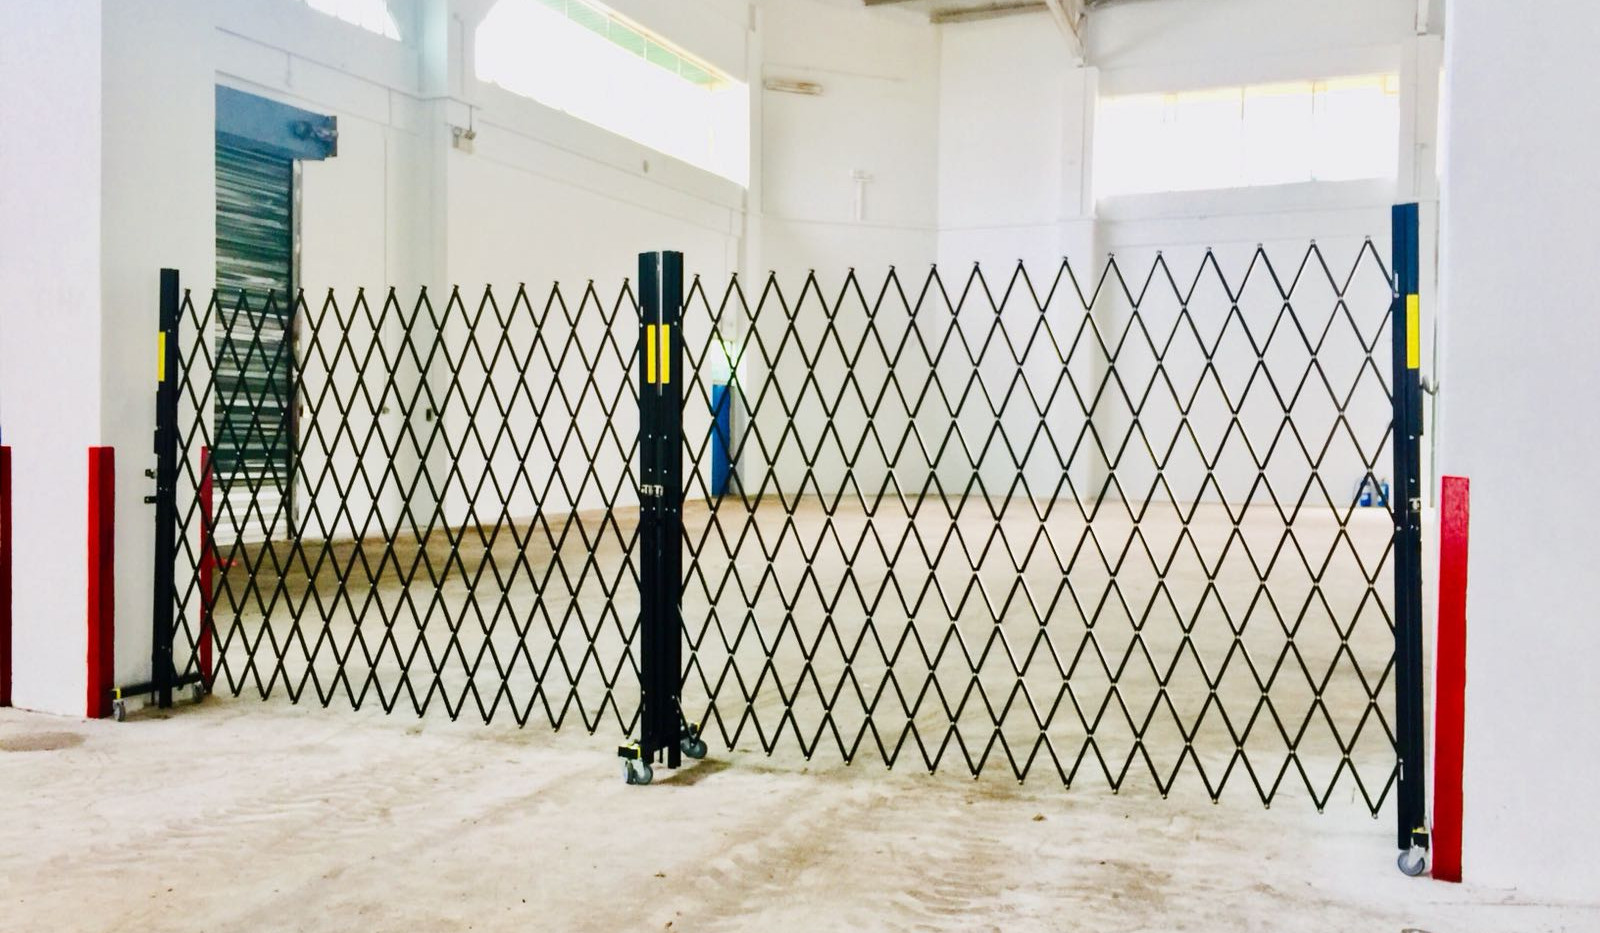 Security Barriers for warehouse barricad